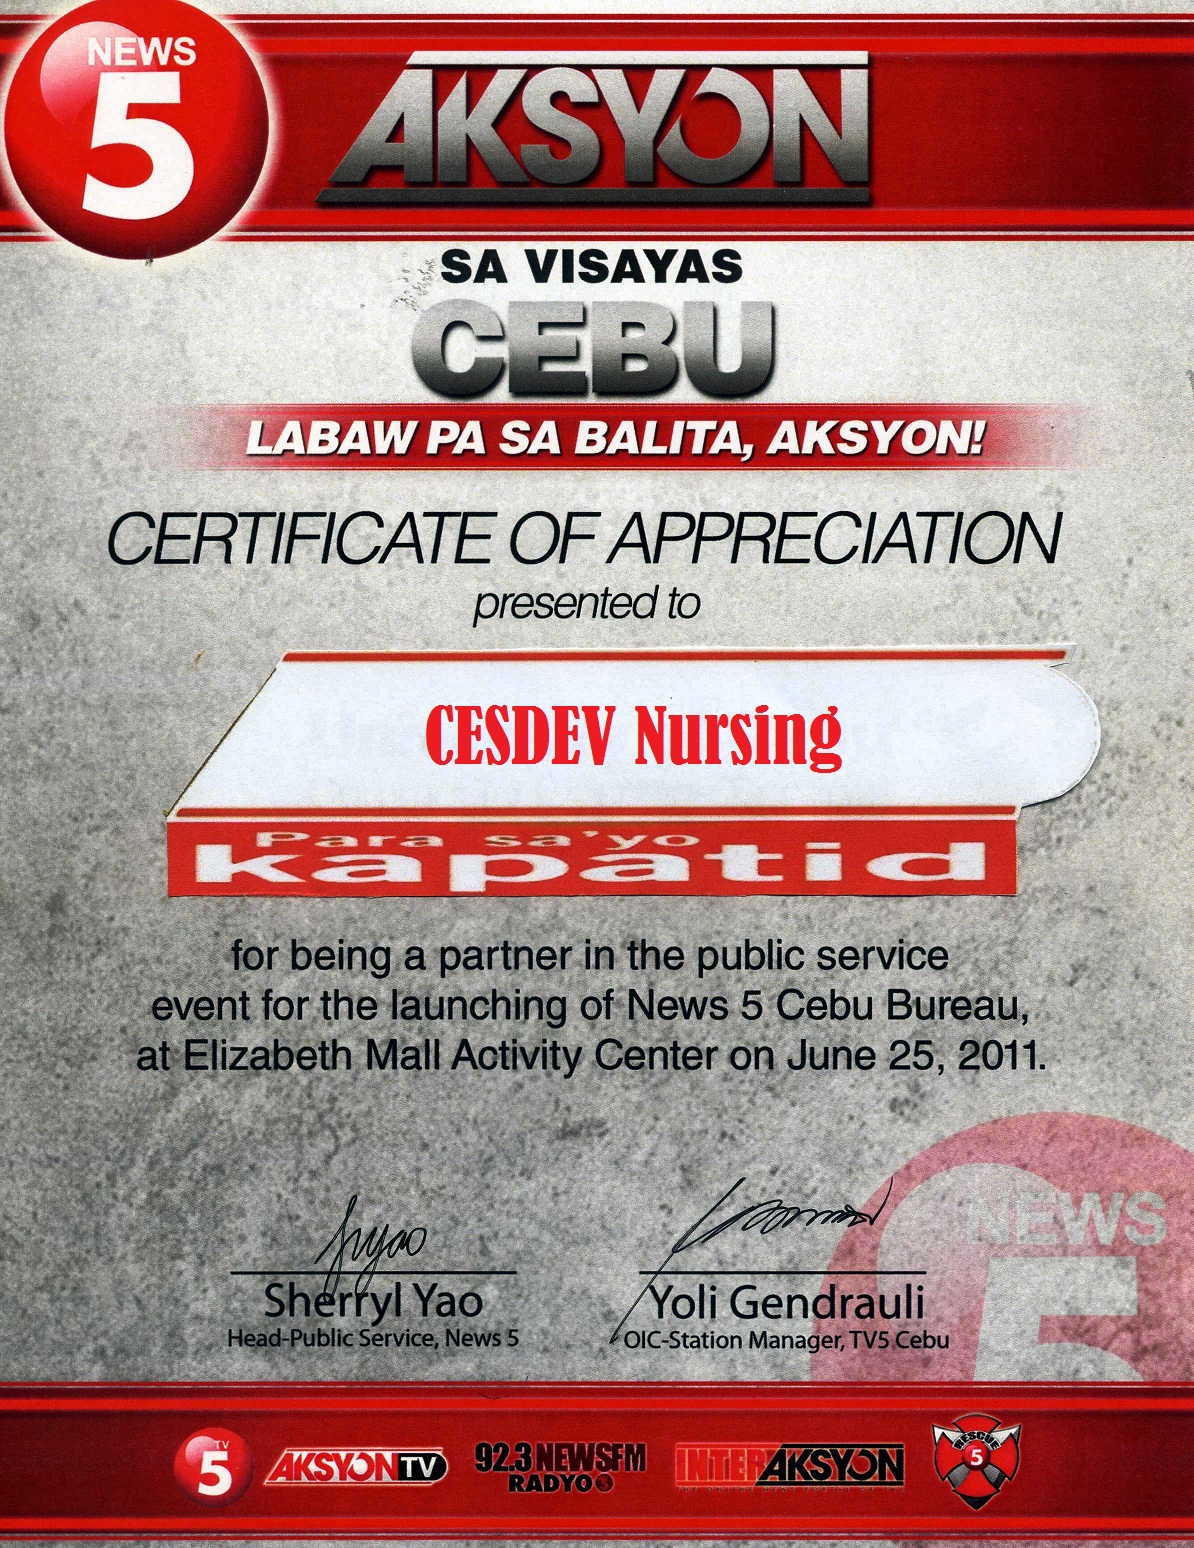 Uc nursing cesdev august 2011 uc nursing cesdev received a certificate of appreciation for having joined in the medical mission during the grand station launch of tv5 cebu last june 25 yadclub Image collections